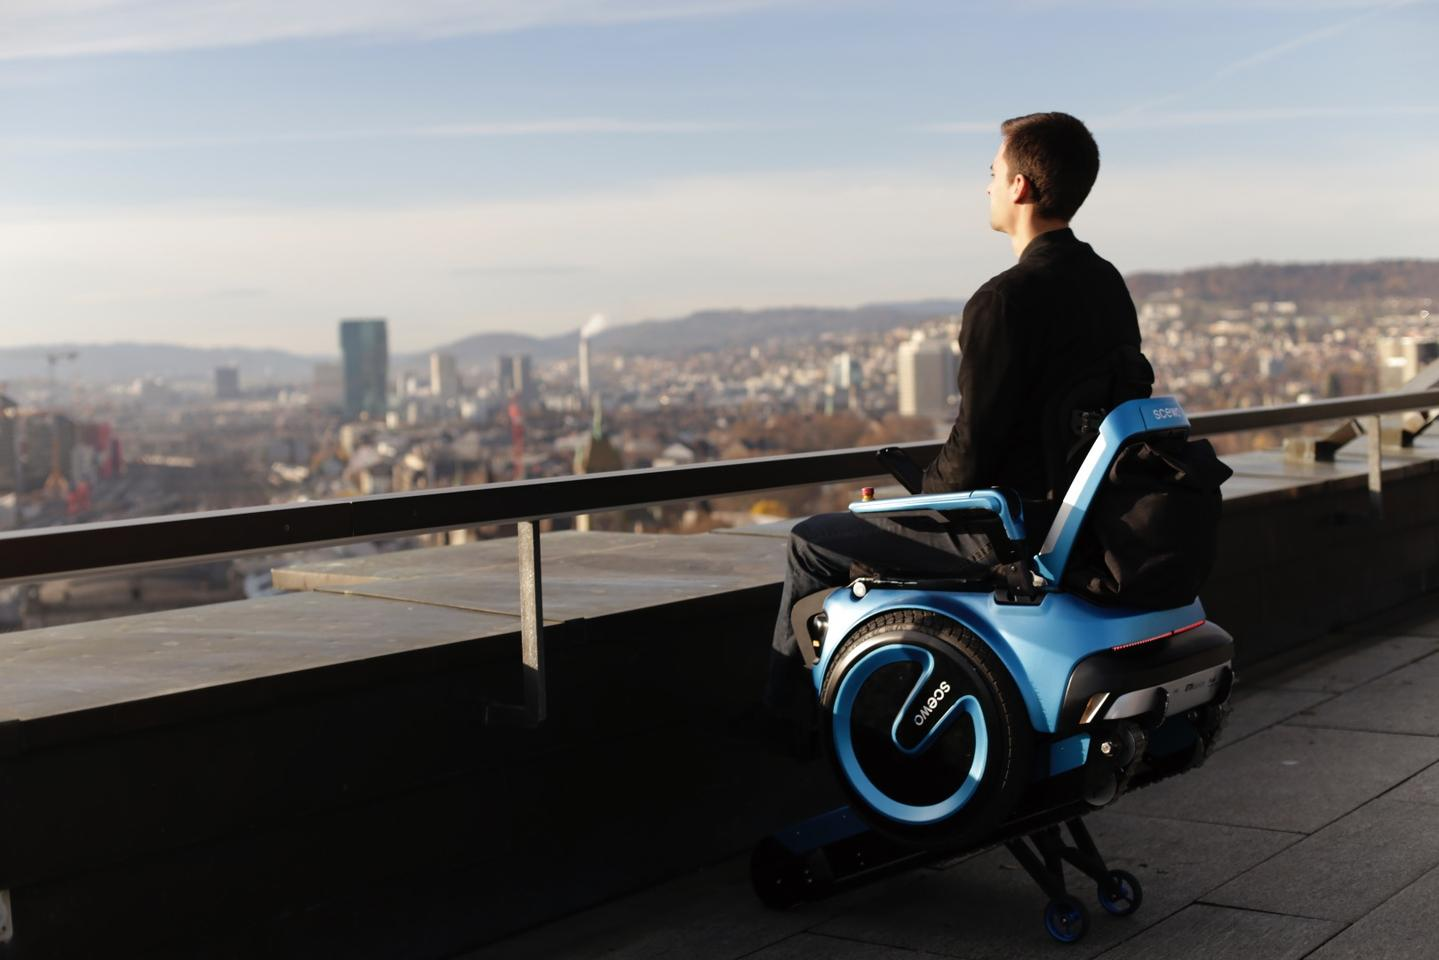 The Elevated Mode allows the rider to be raised up for eye-level communication with others